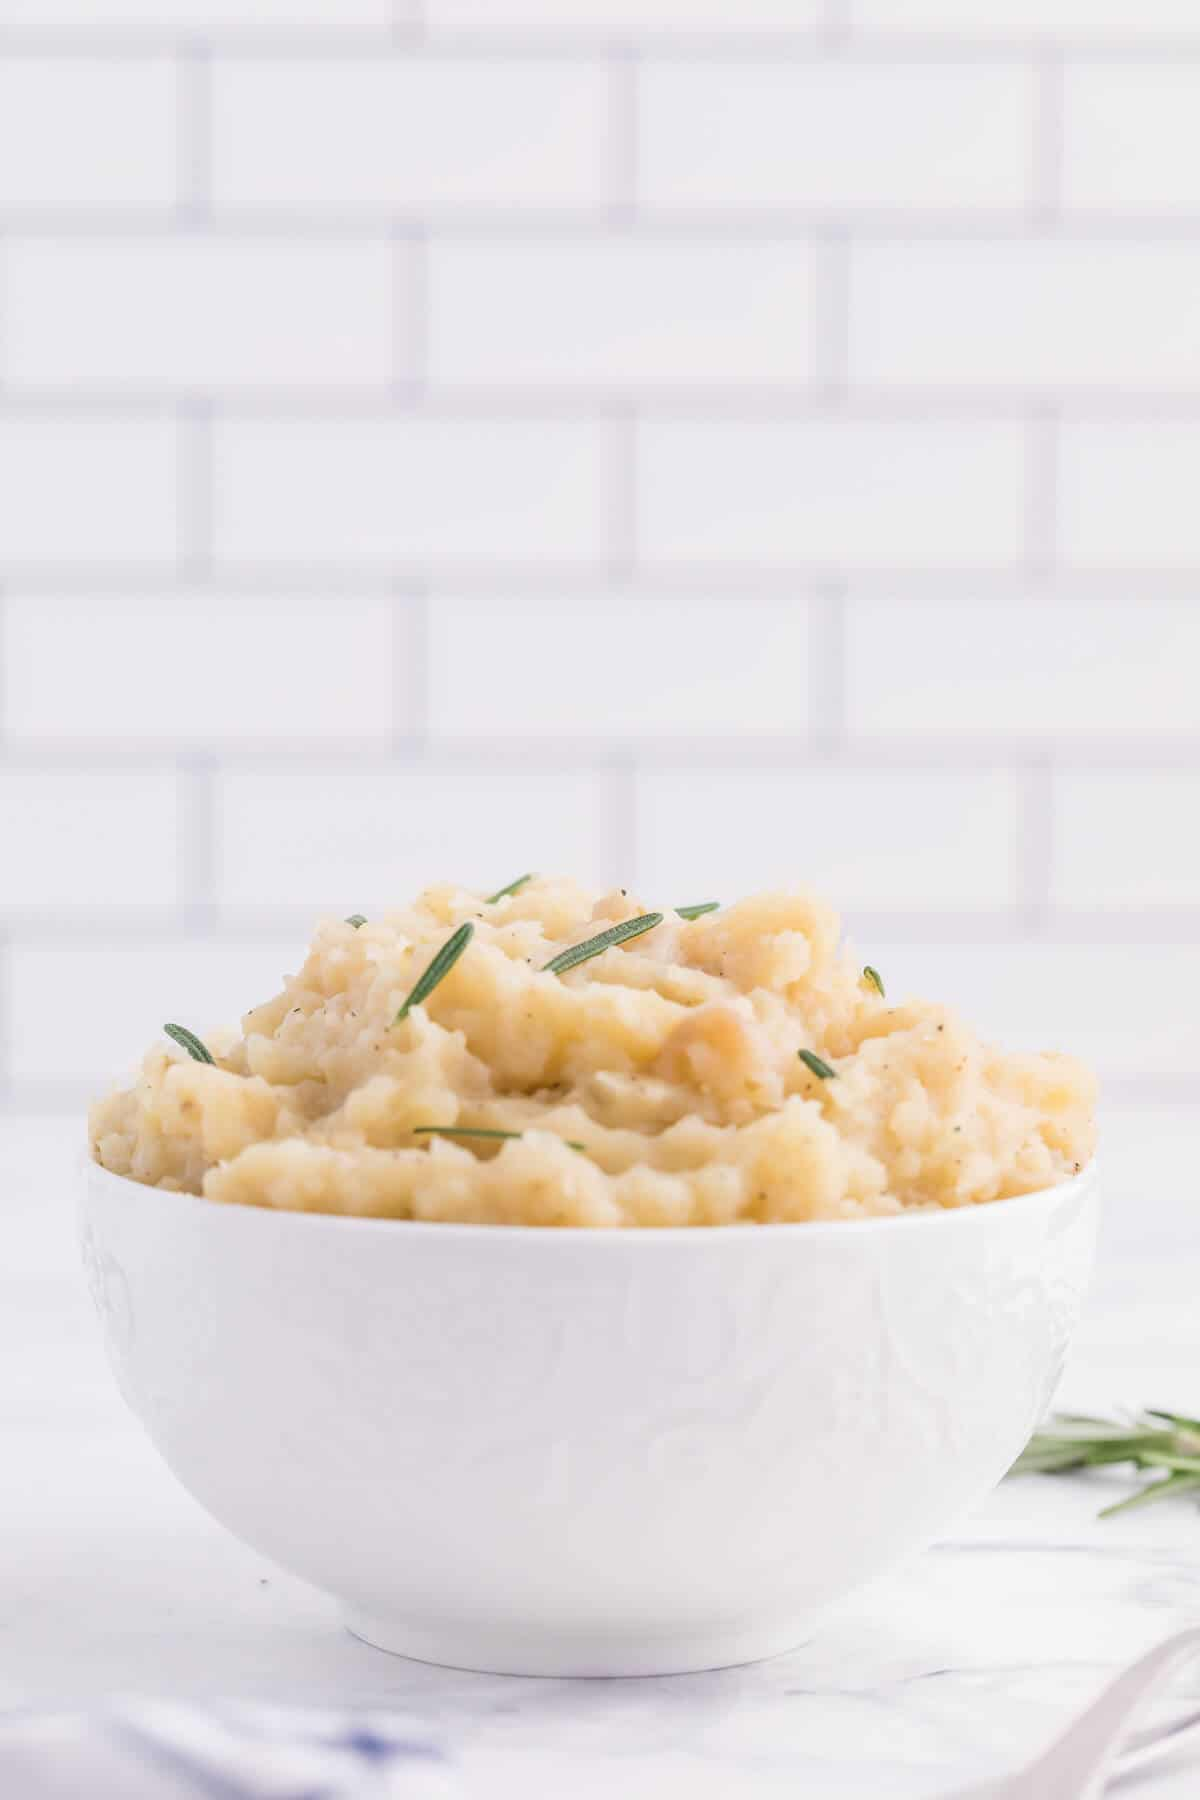 Slow Cooker Rosemary Garlic Mashed Potatoes are the best way to make potatoes. Creamy, rich, garlicky flavor in every bite.